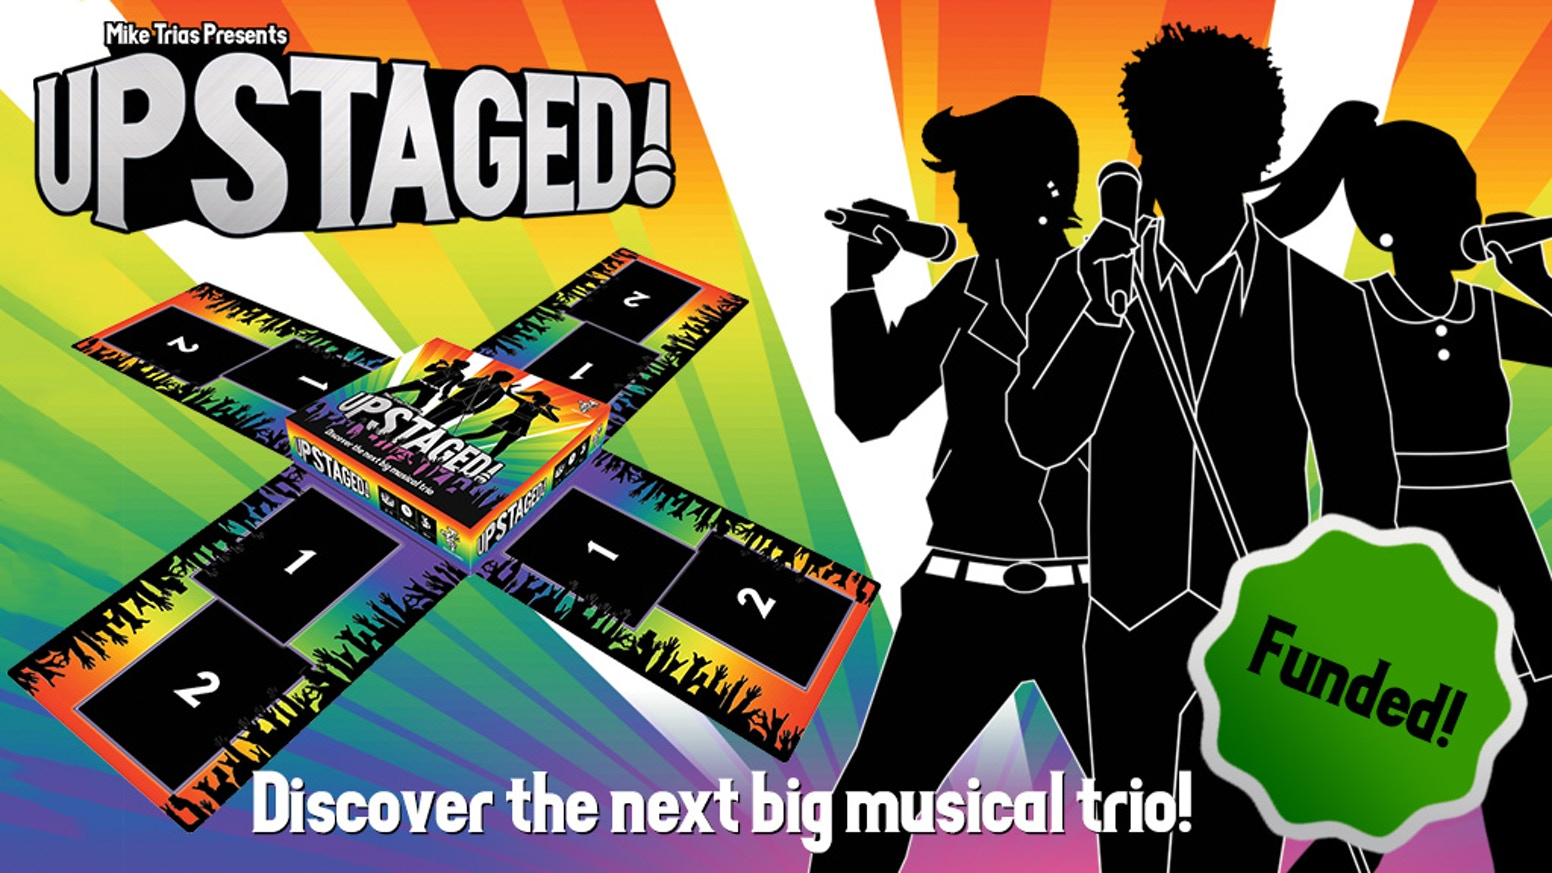 Become a musical mentor, competing to form the hottest new trio in this quick, lightweight game!